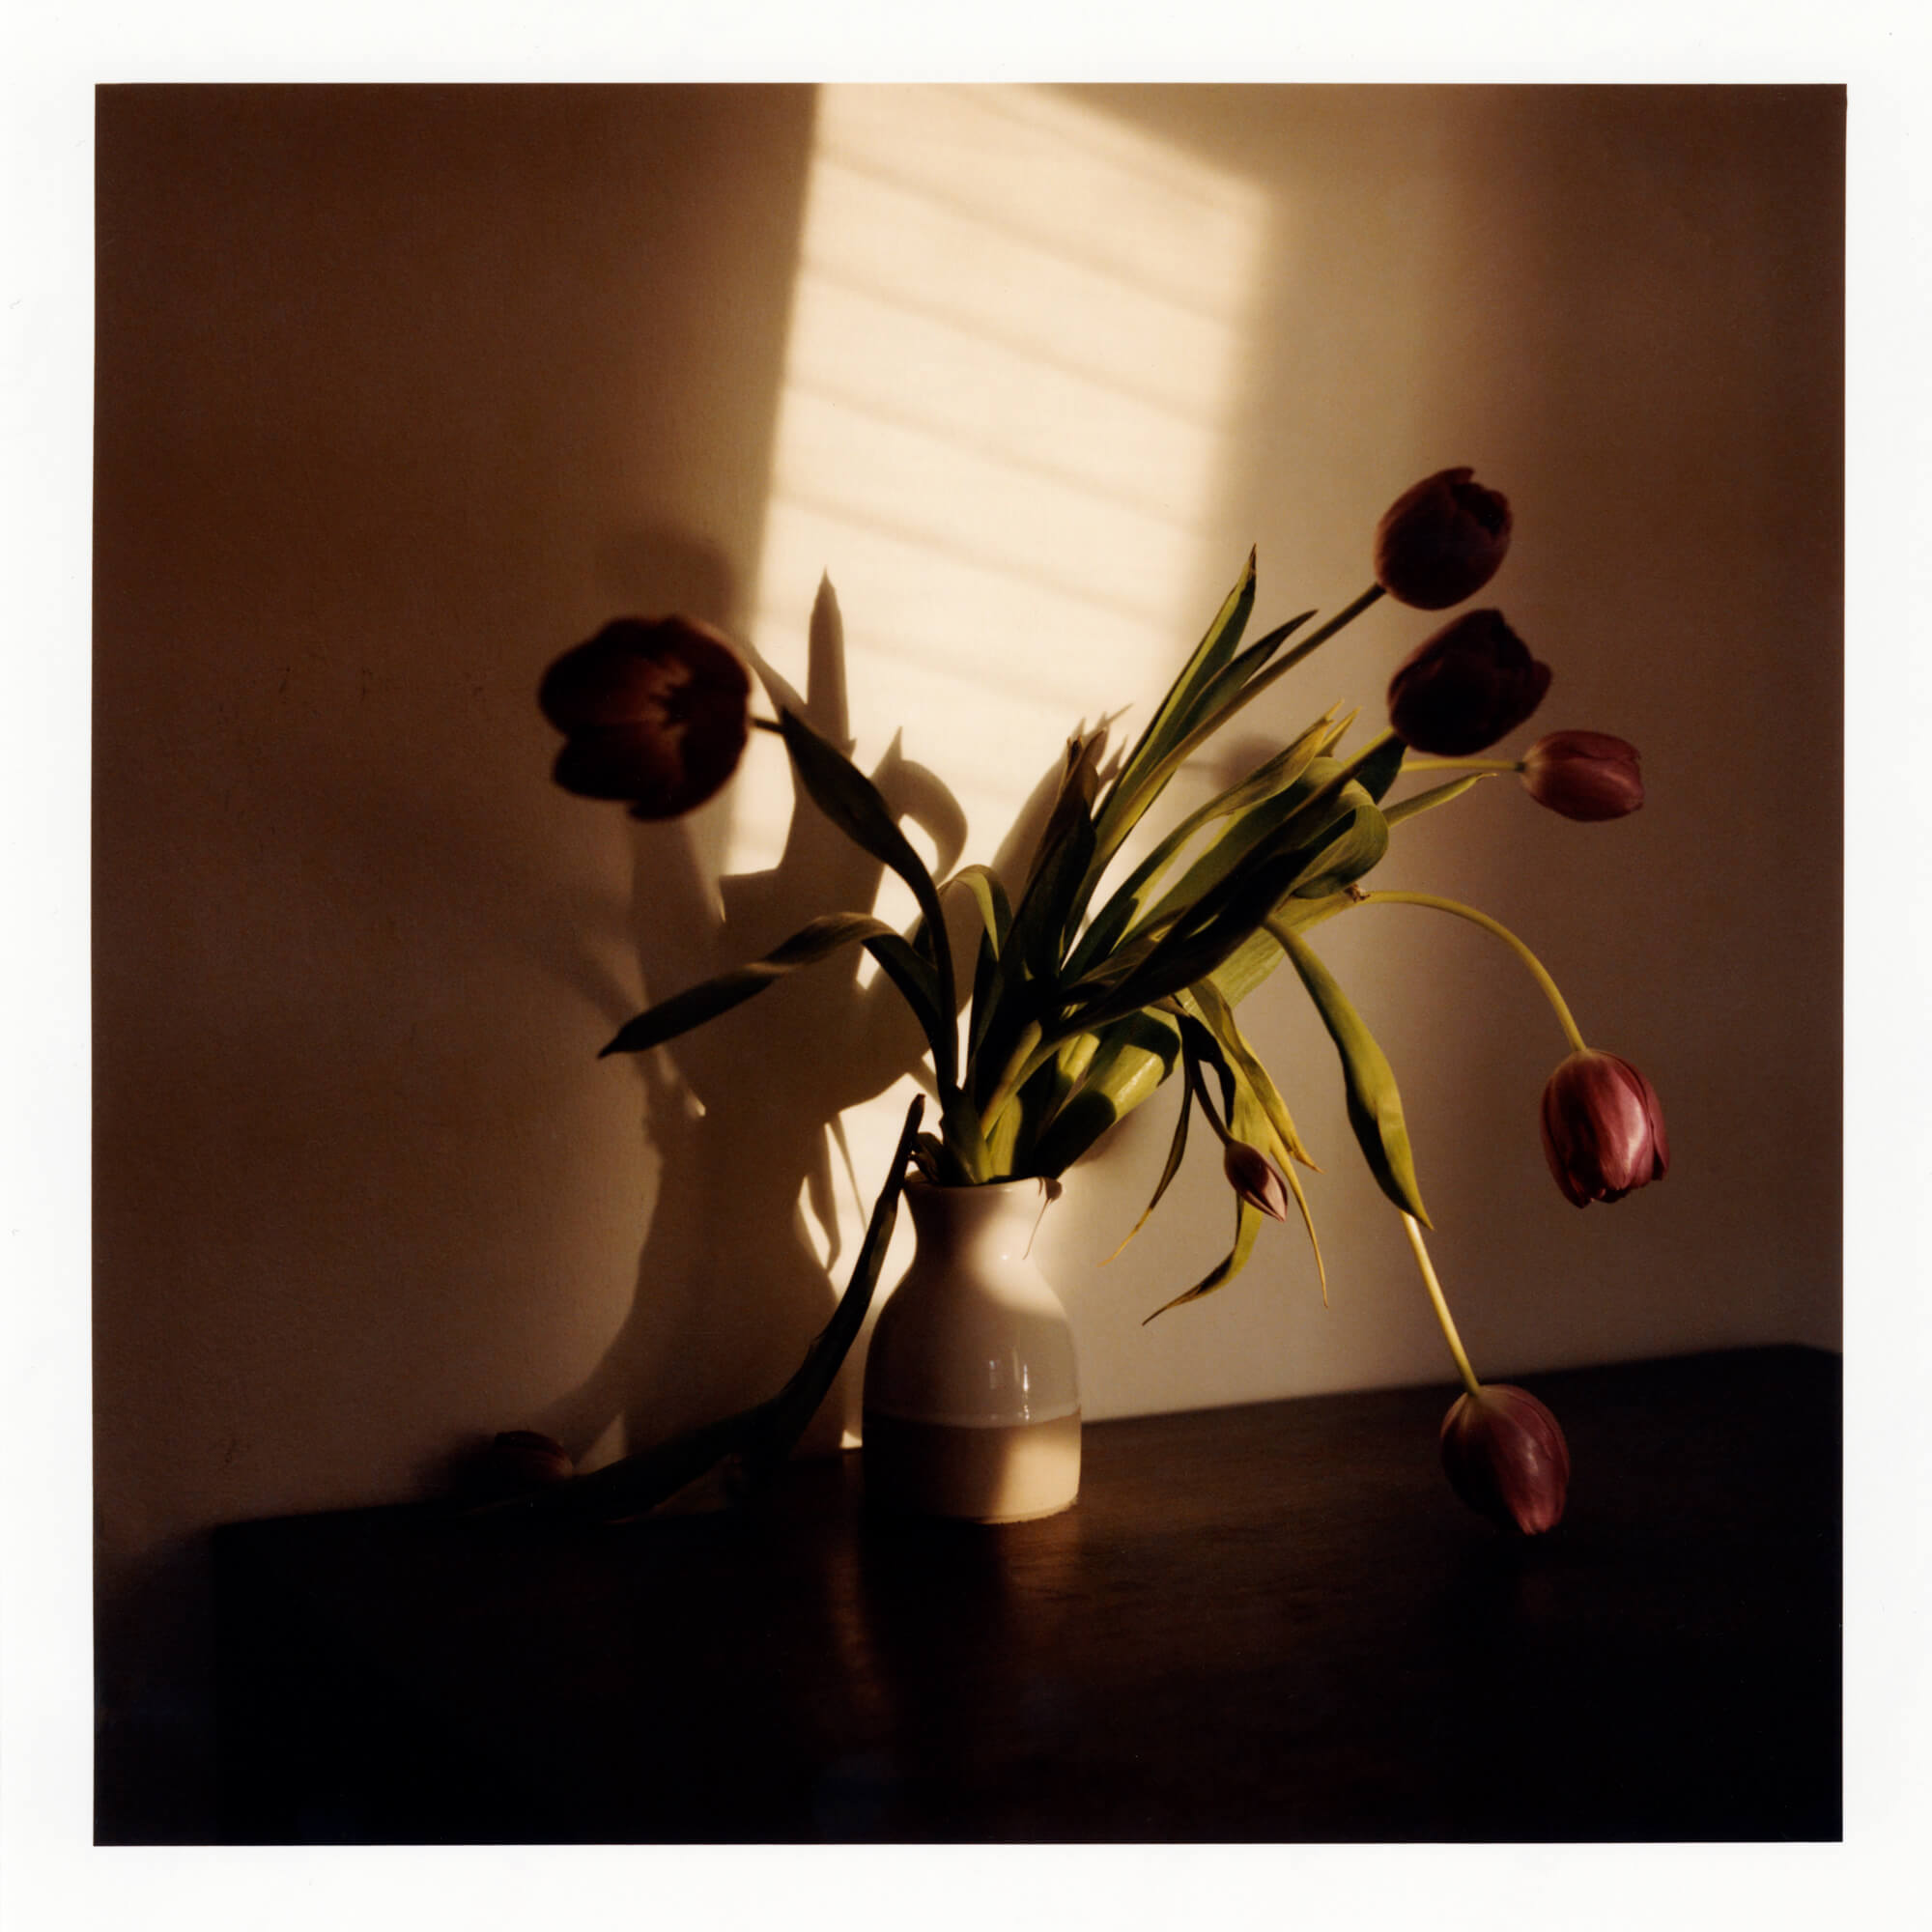 Phoebe Somerfield - Grapefruit Boulevard the south west collective of photography still life photo of a plant pot in low light